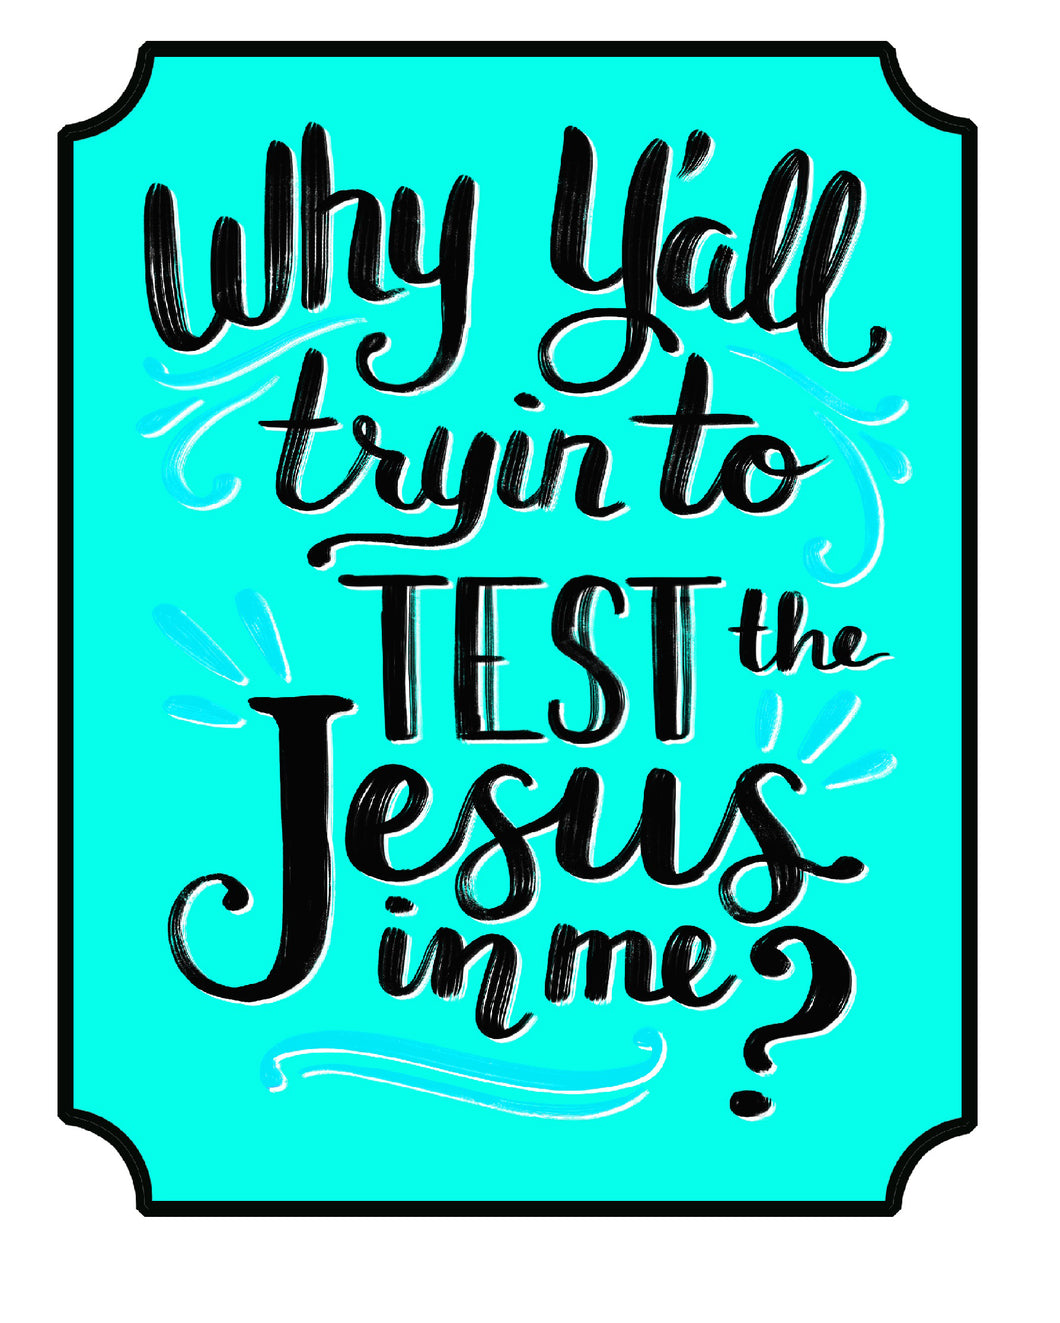 Test the Jesus Decal